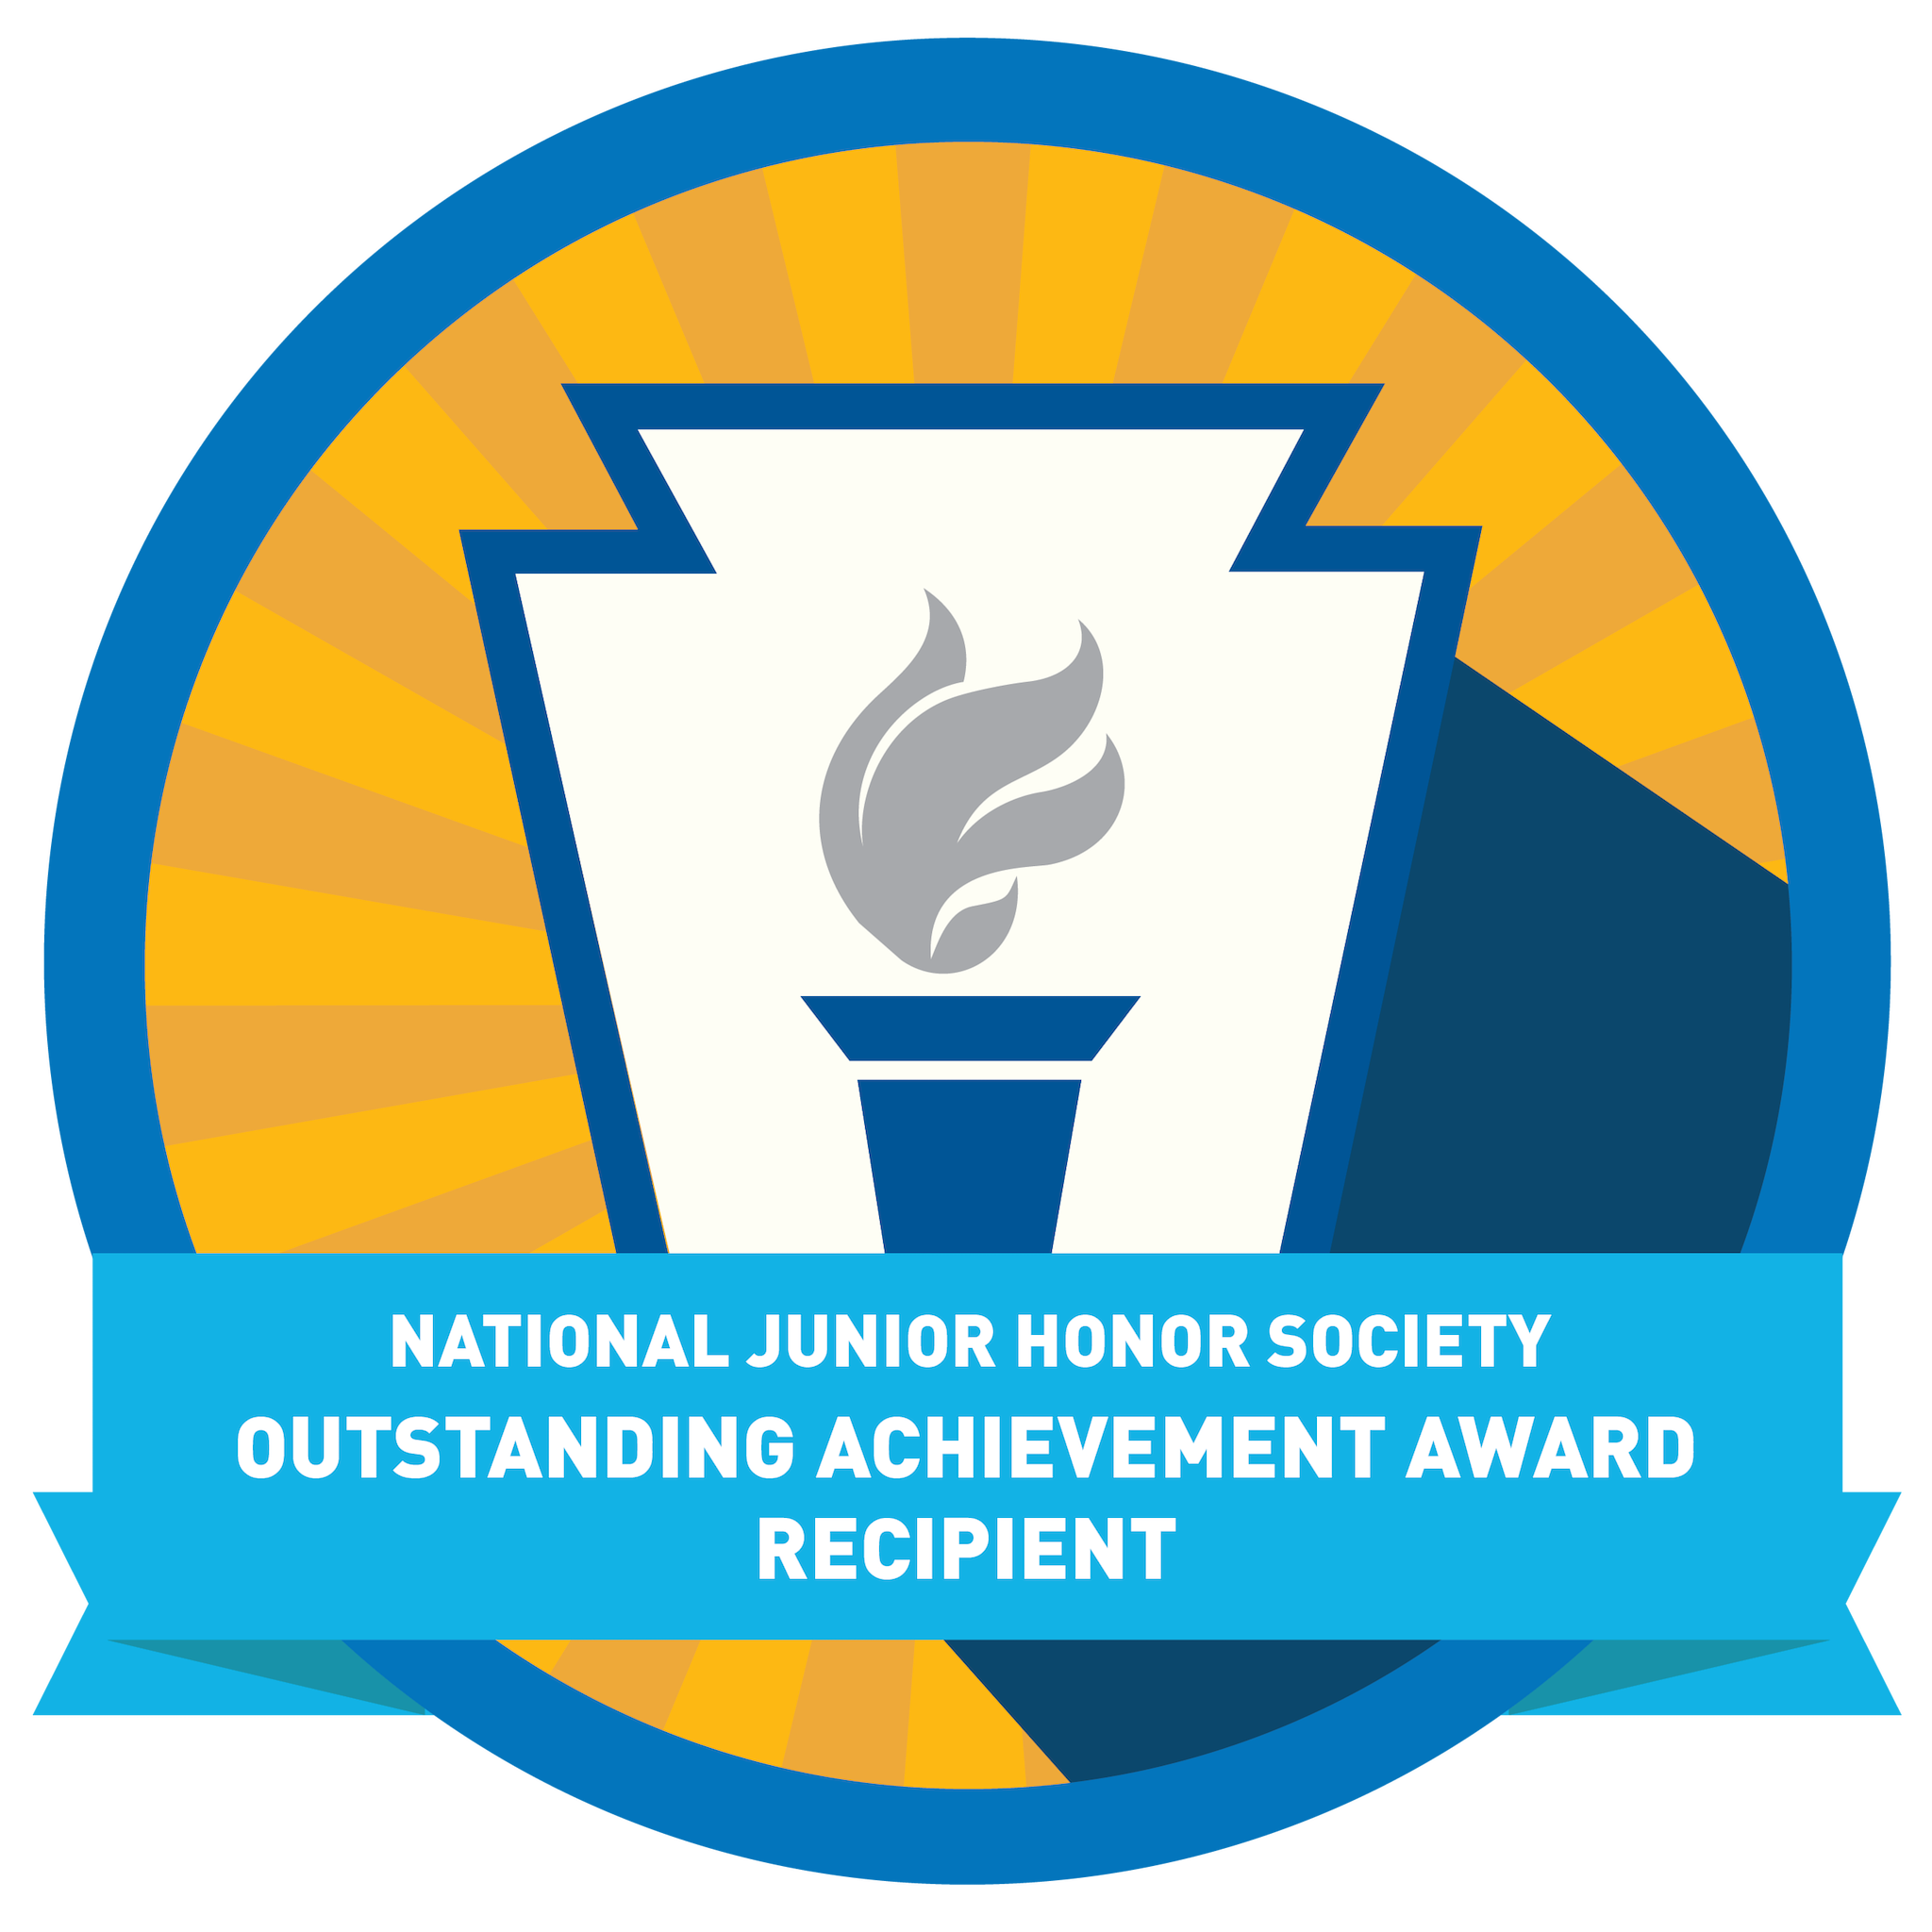 National Junior Honor Society Outstanding Achievement Award Recipient